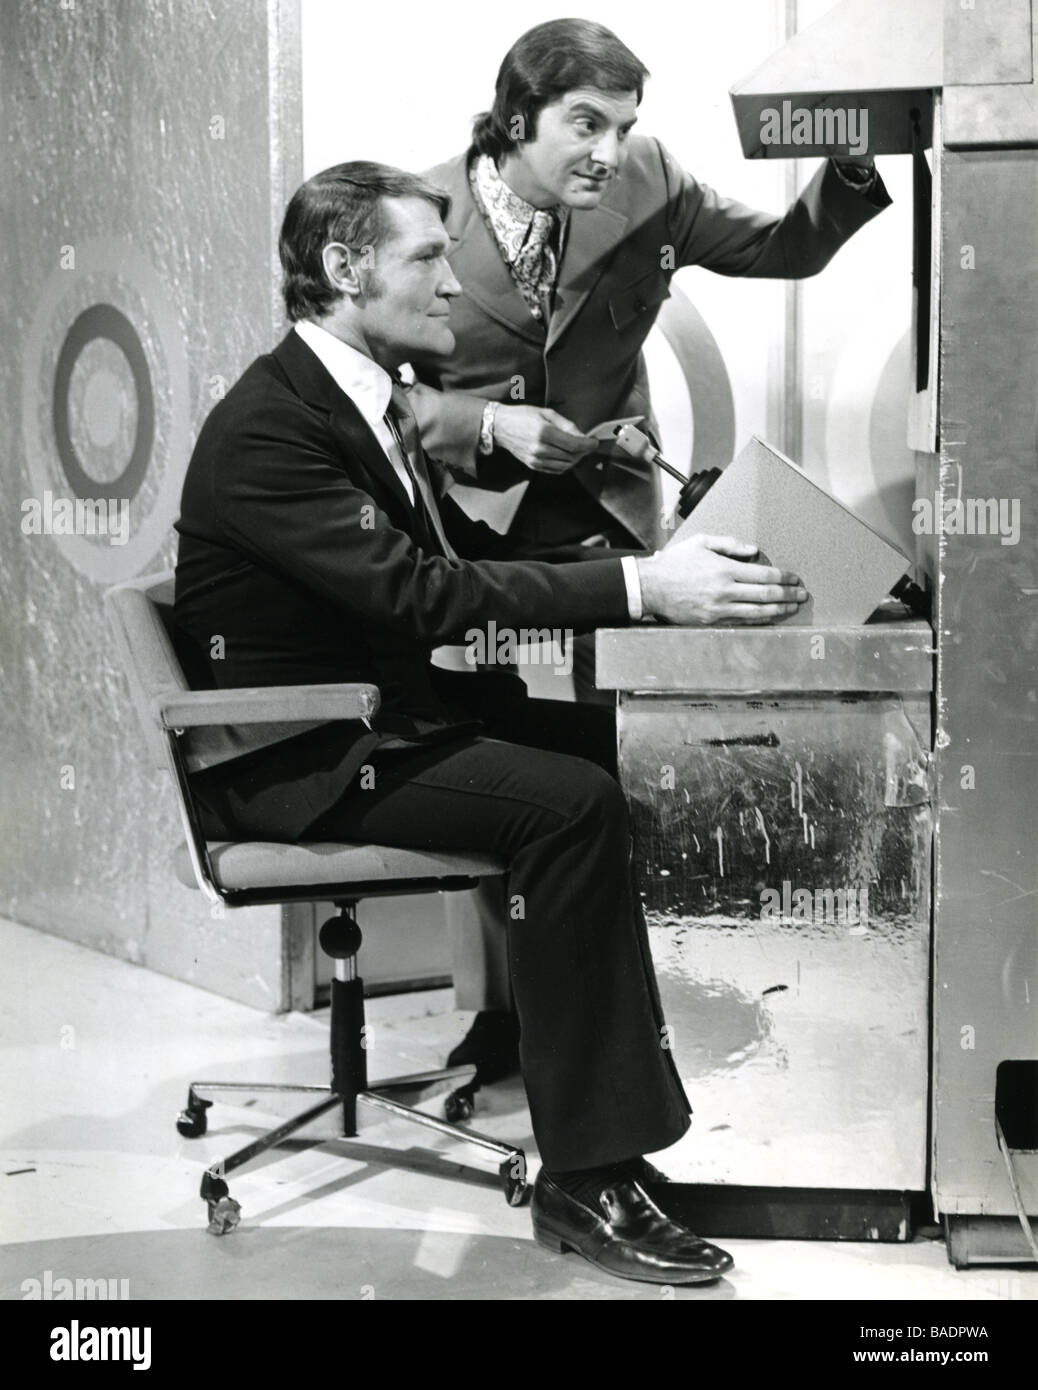 El Golden Shot 1960 UK TV game show con Bob Monkhouse compere y actor permanente Patrick Allan Imagen De Stock